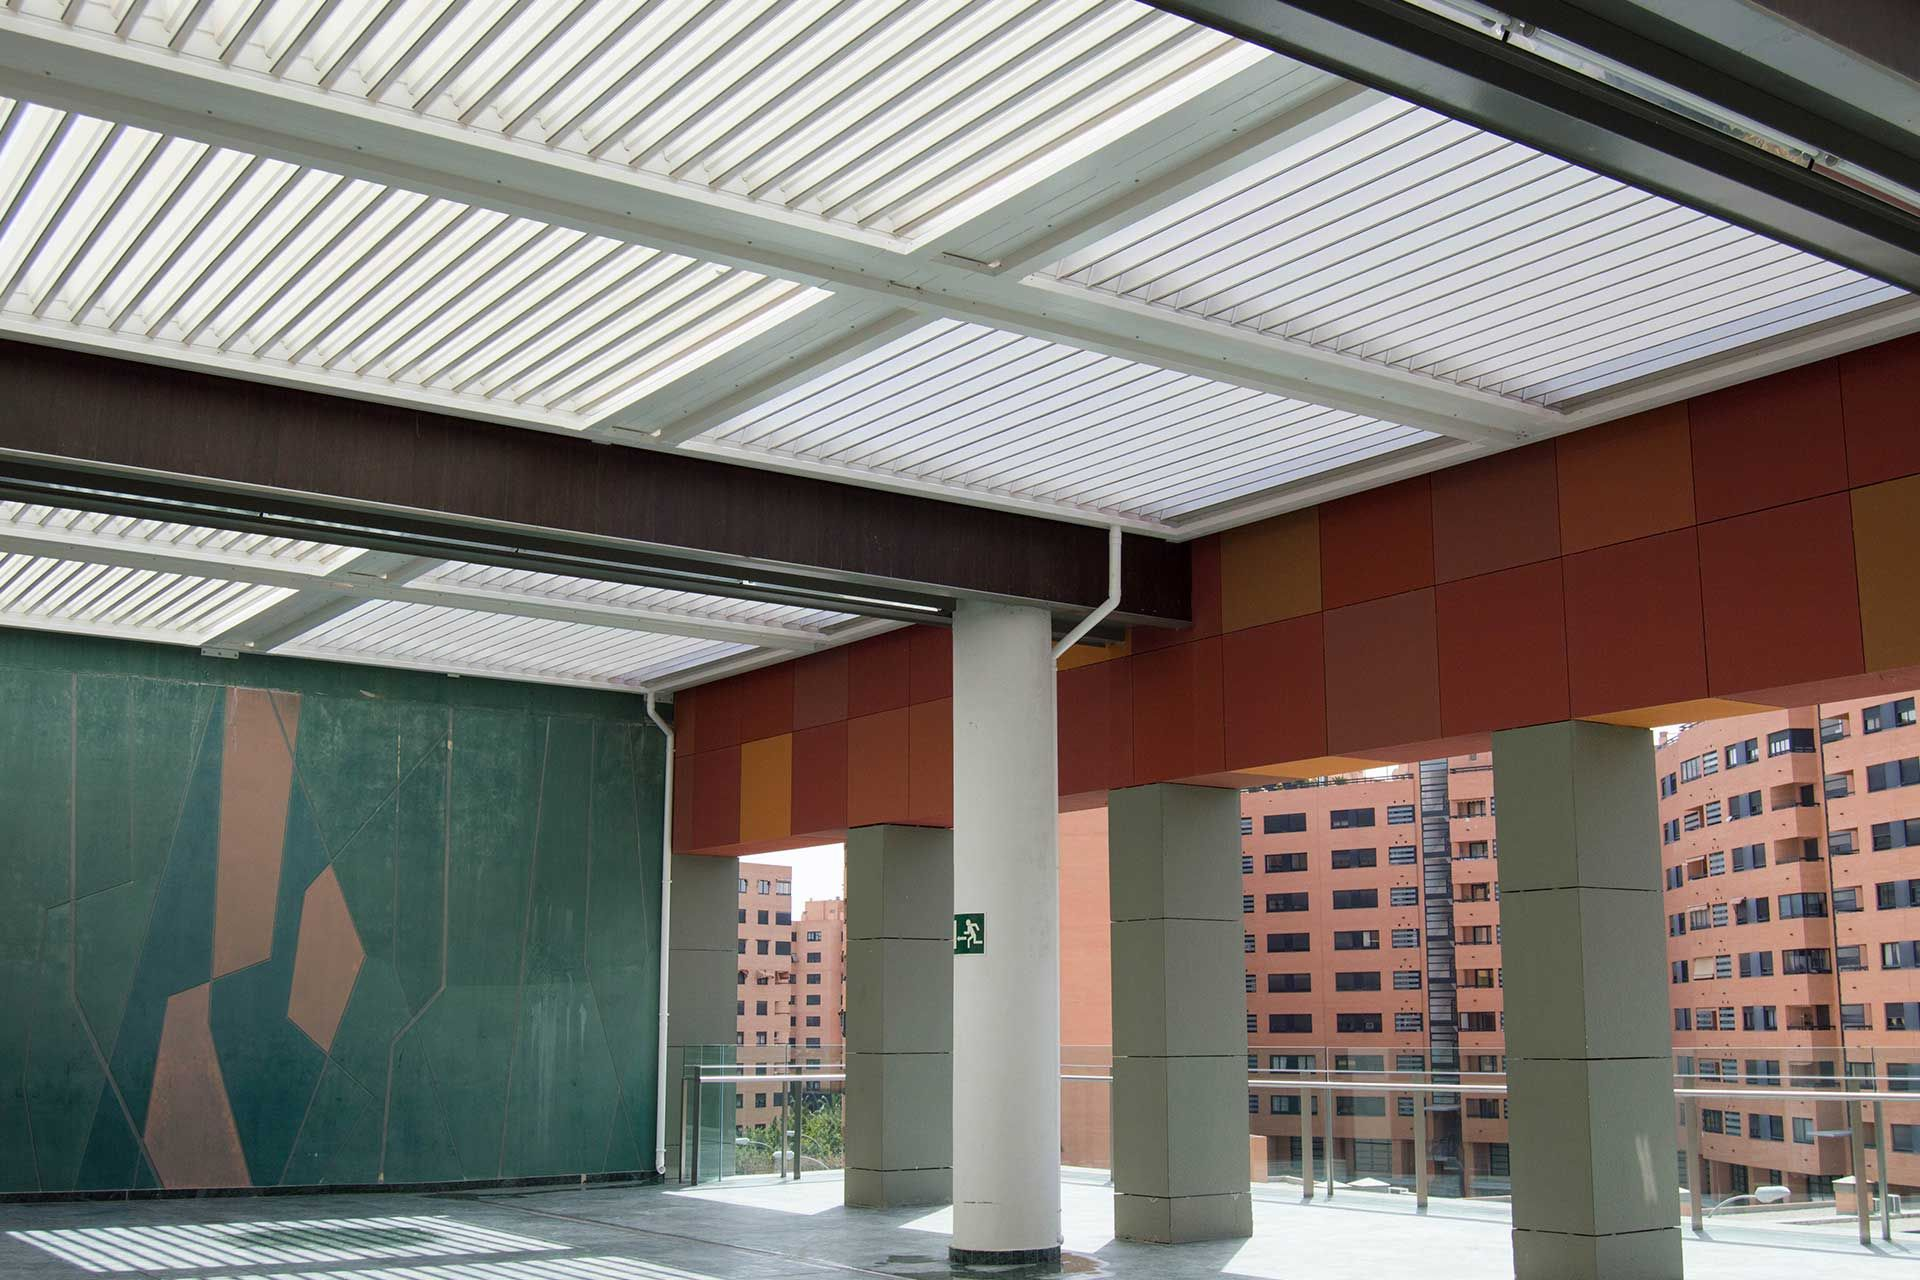 Bioclimatic pergola on the outside of the mall.